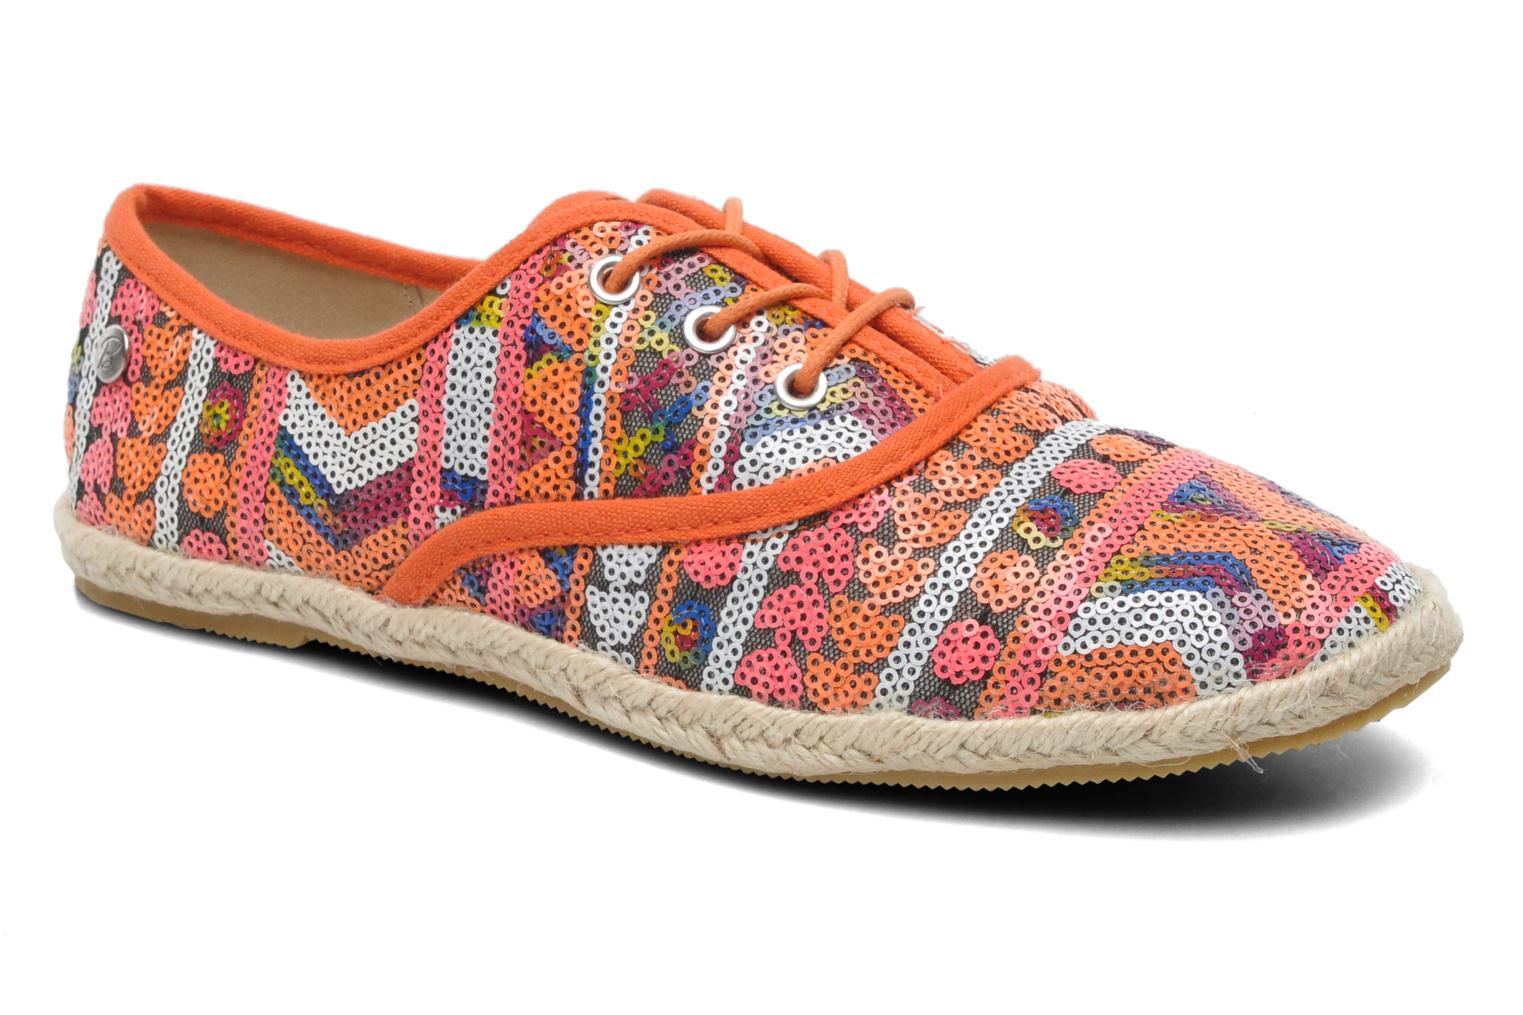 Espadrilles Belen by Blink